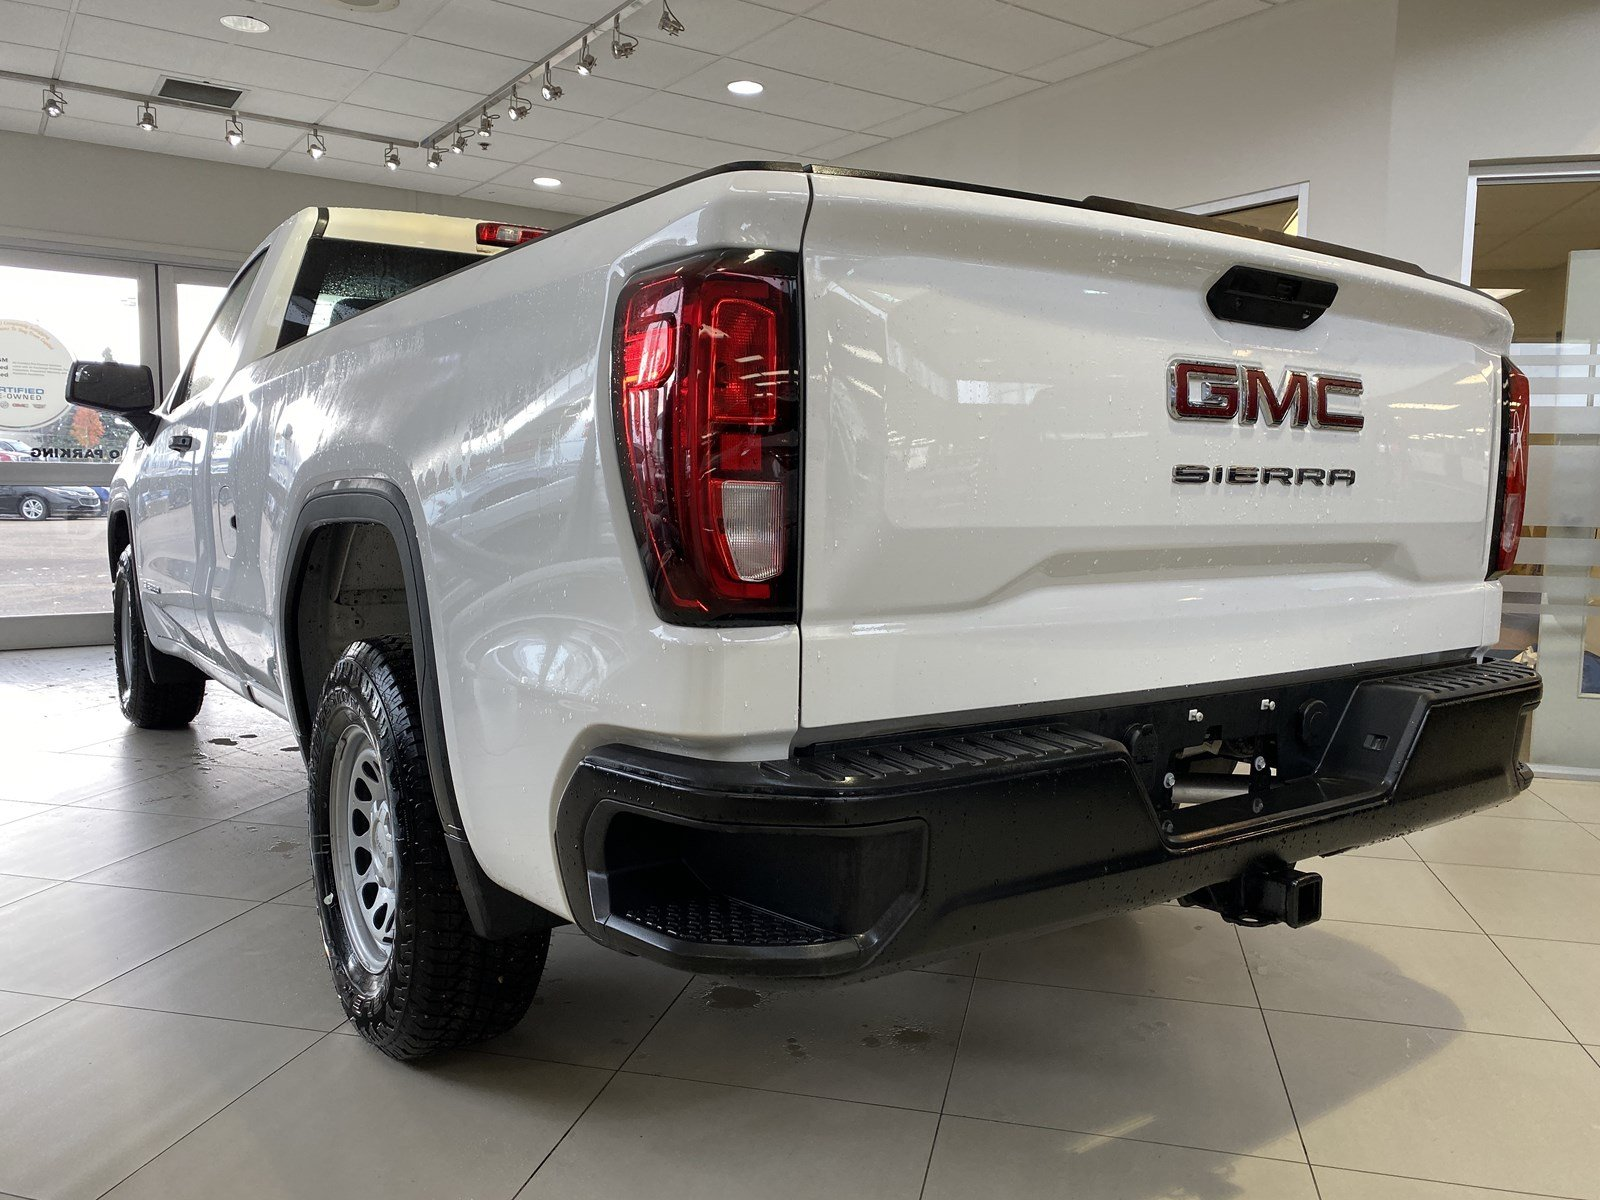 New 2019 GMC Sierra 1500 Regular Cab